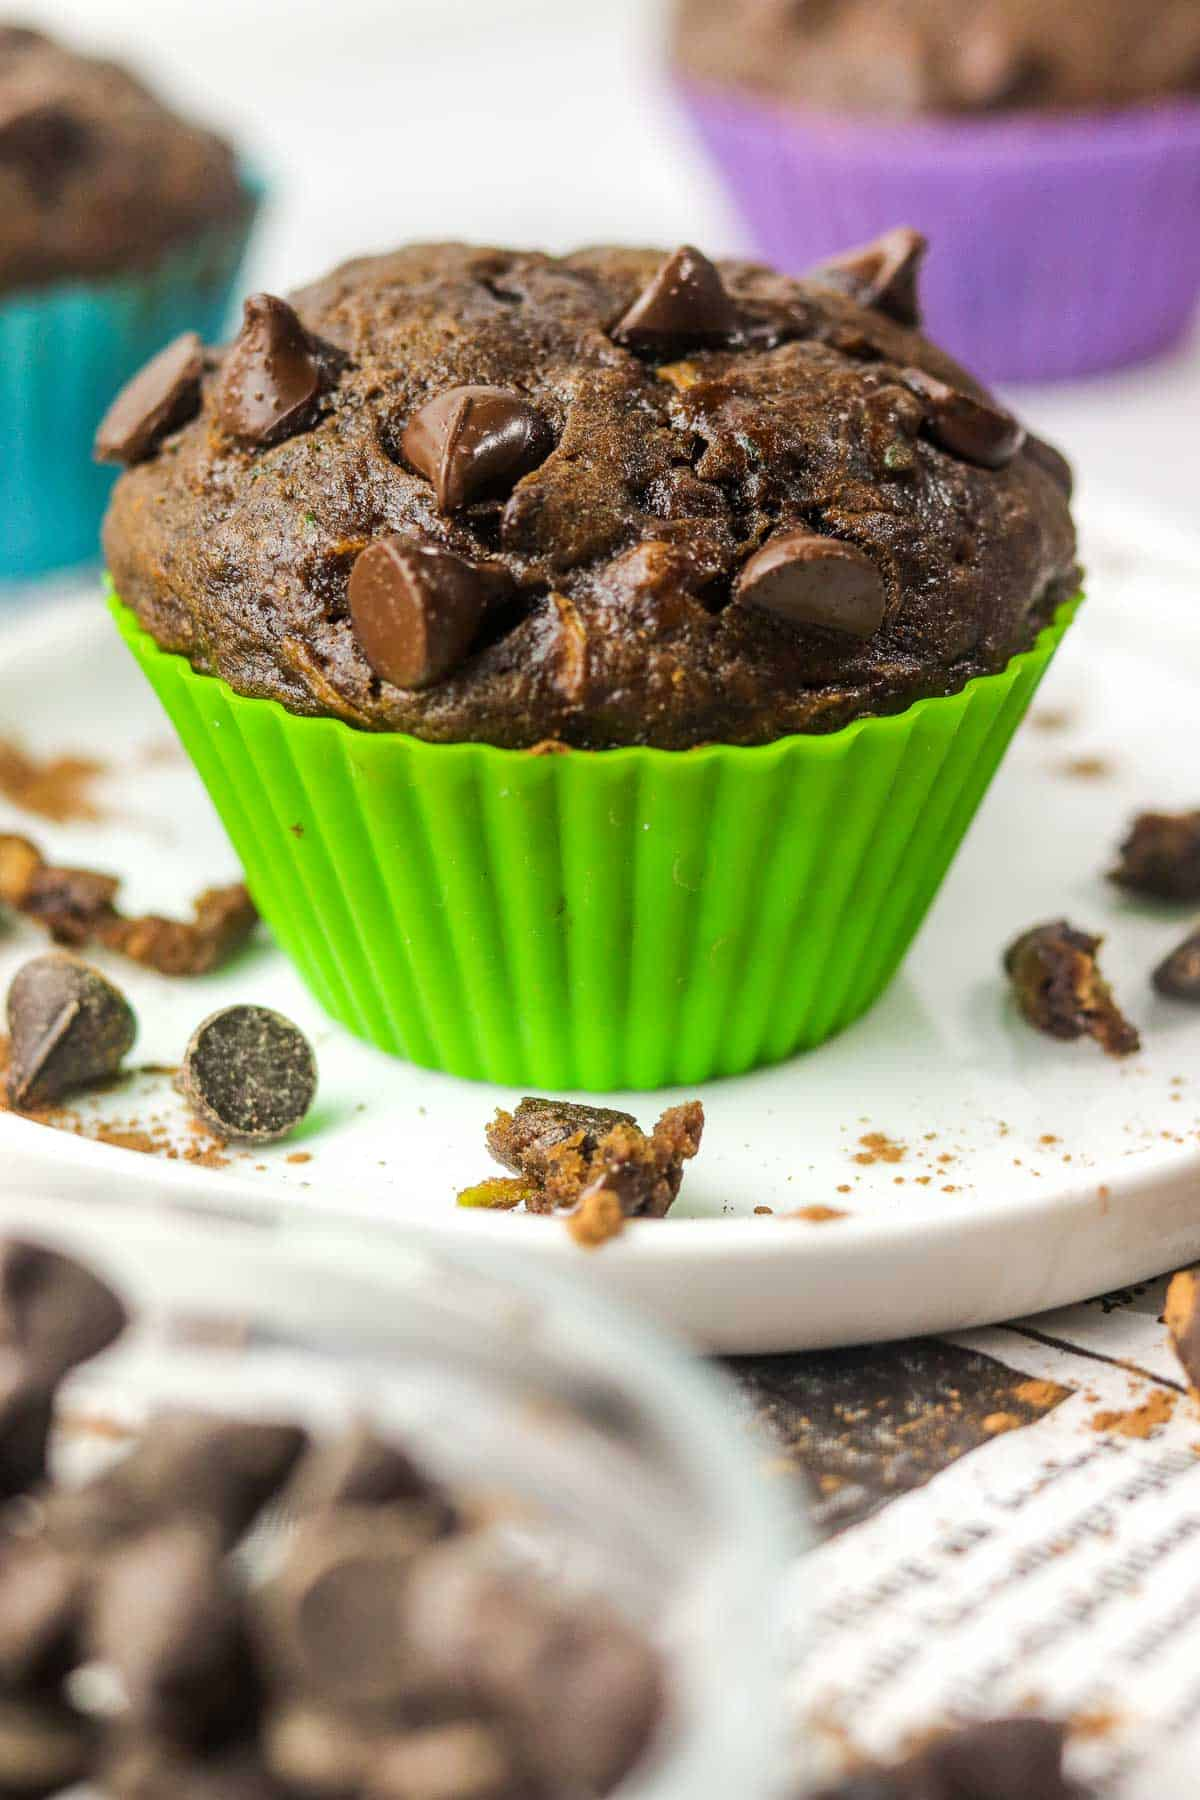 chocolate zucchini banana muffin in a green muffin liner on a plate.